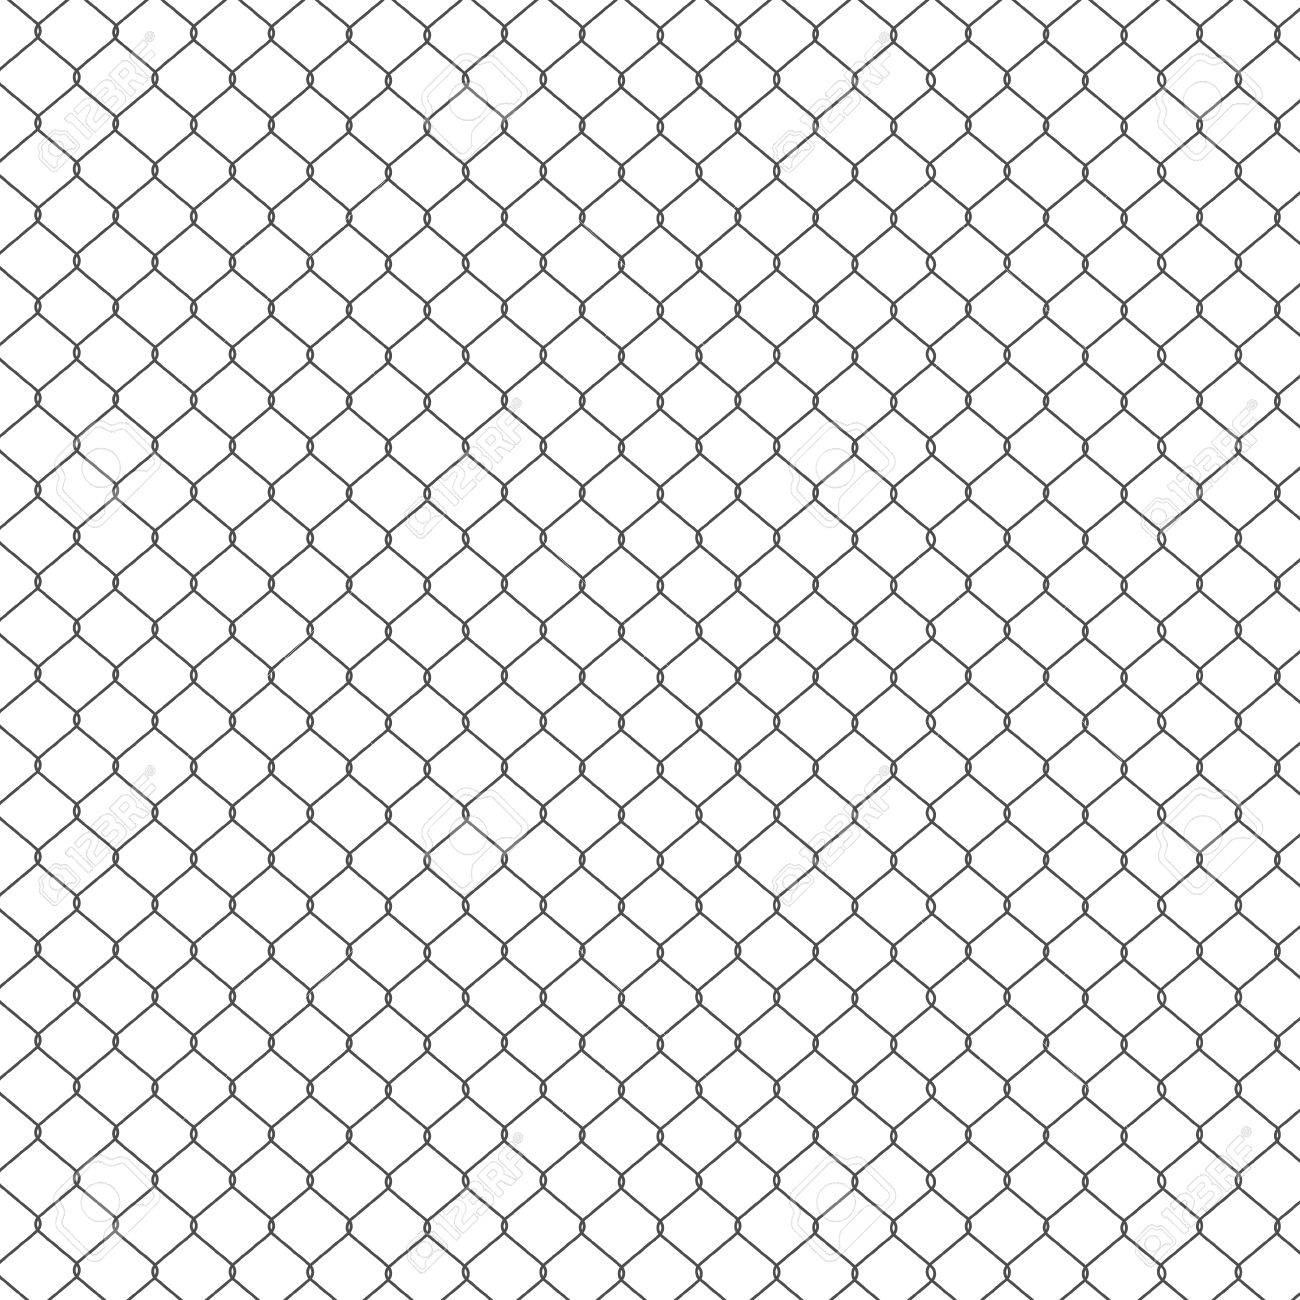 Nice Steel Wire Fence Illustration - Wiring Diagram Ideas - blogitia.com